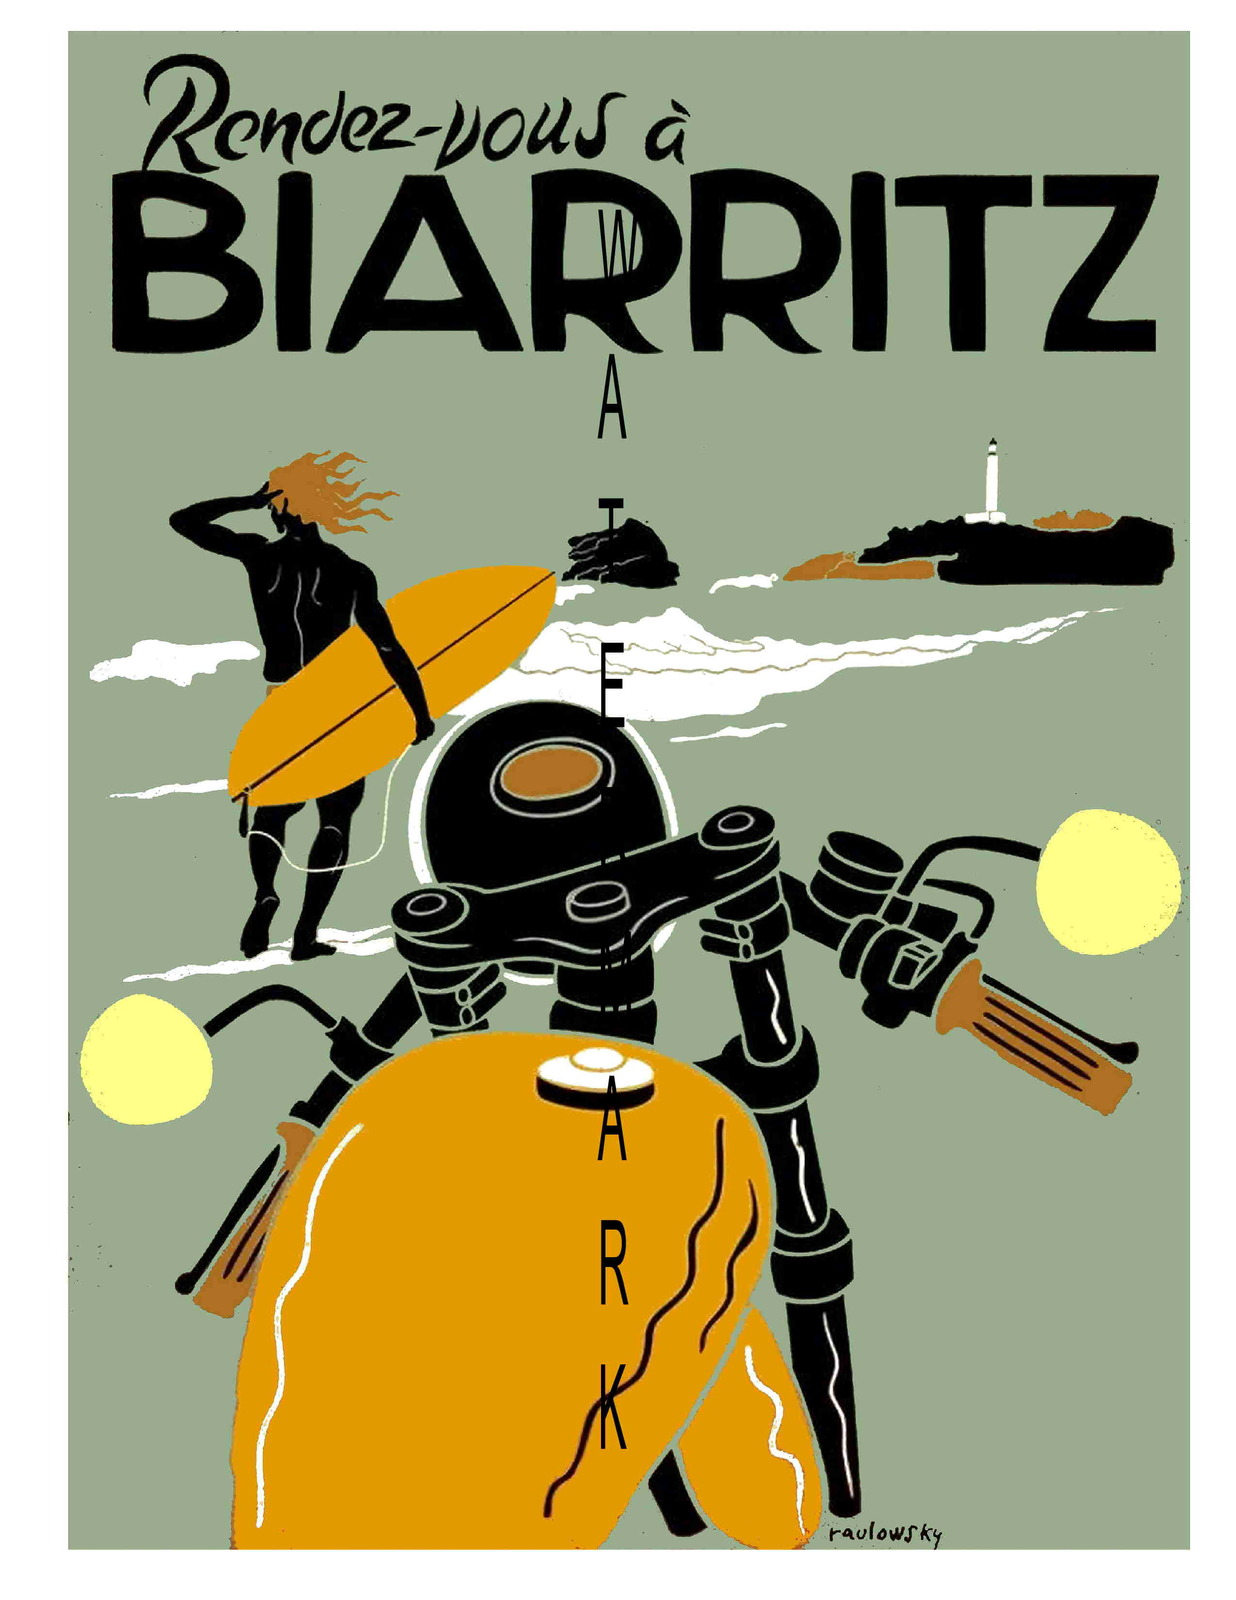 Biarritz Vintage 13 x 10 in Rendez-Vous Biarritz Travel Adv Giclee Canvas Print